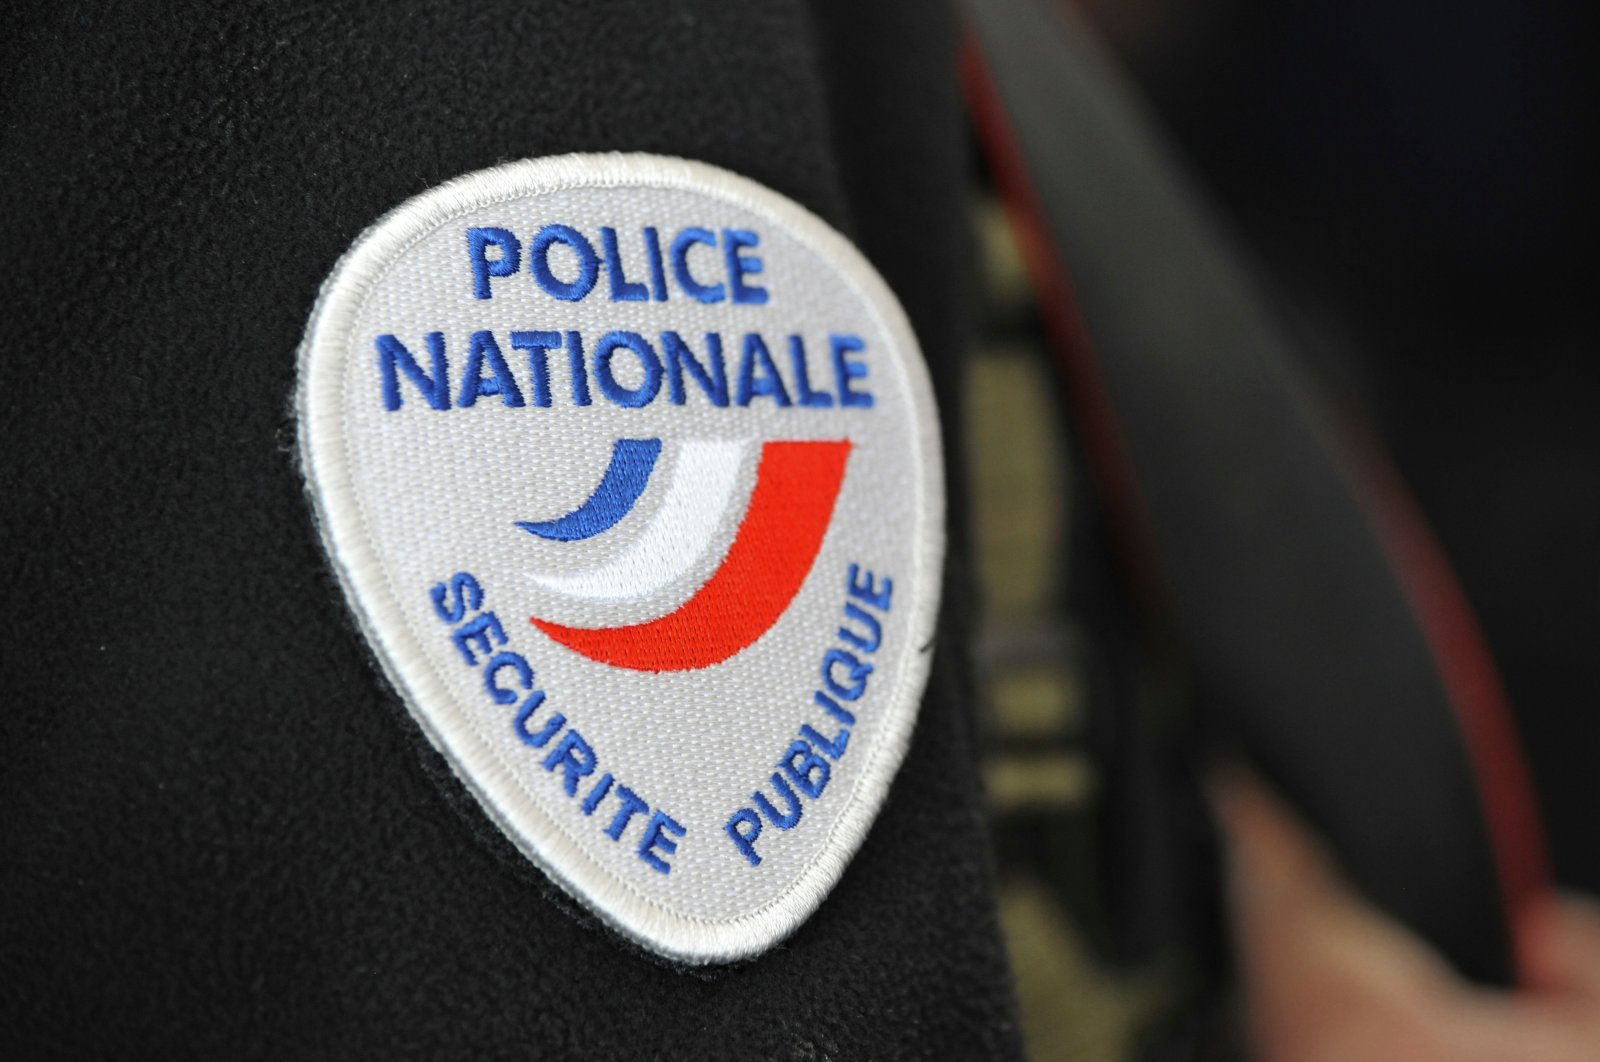 The French National Police symbol sewn onto the sleeve of a police officer is seen during a control operation in France's Marseille on Jan. 19, 2021 (Shutterstock Photo)